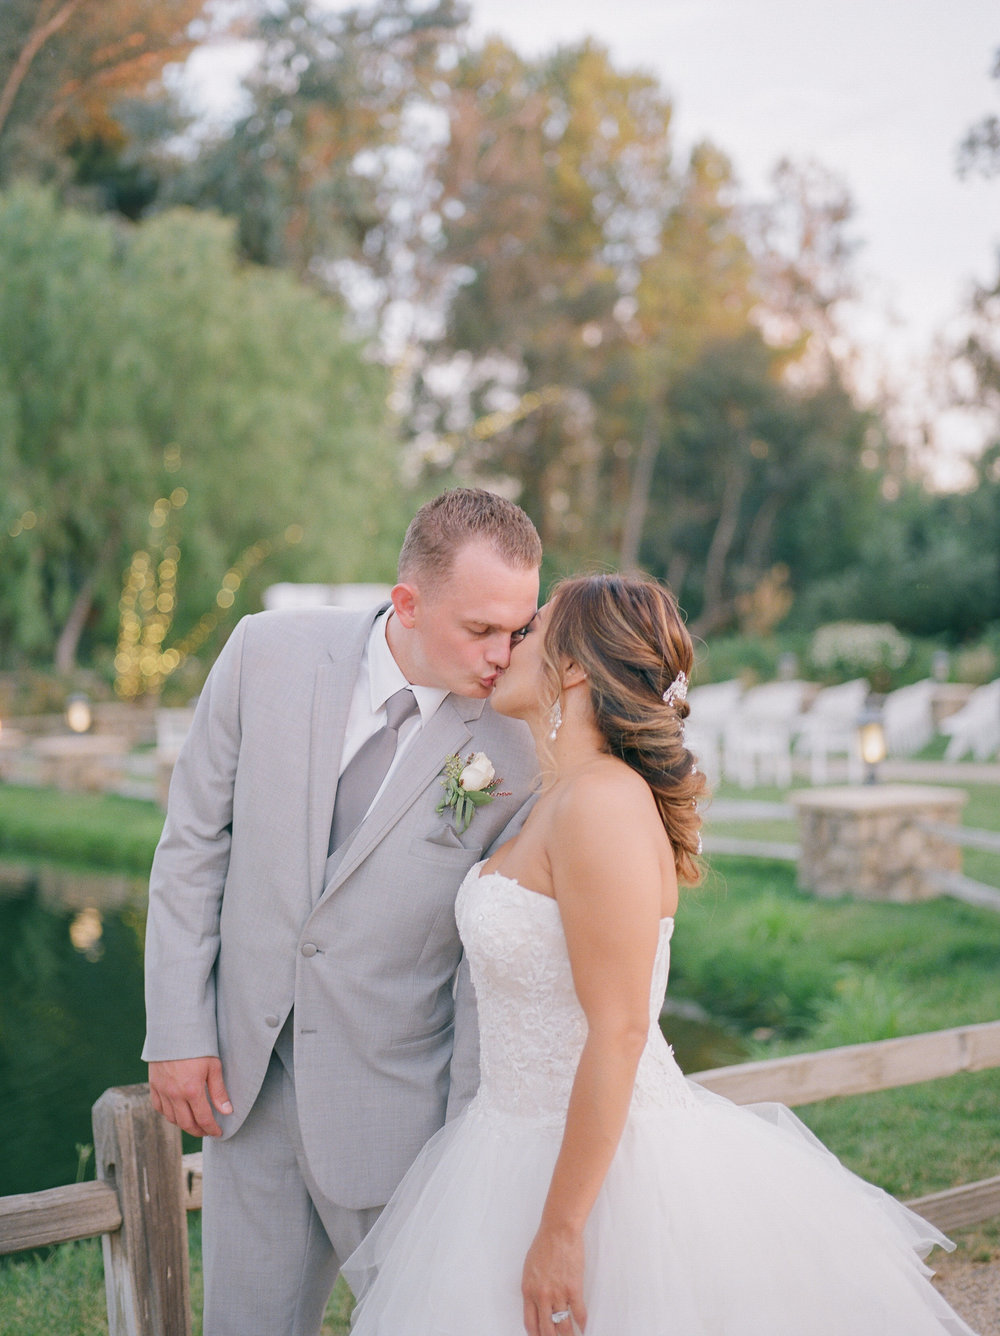 Country-style-wedding-san-diego-thevanitybelle.com